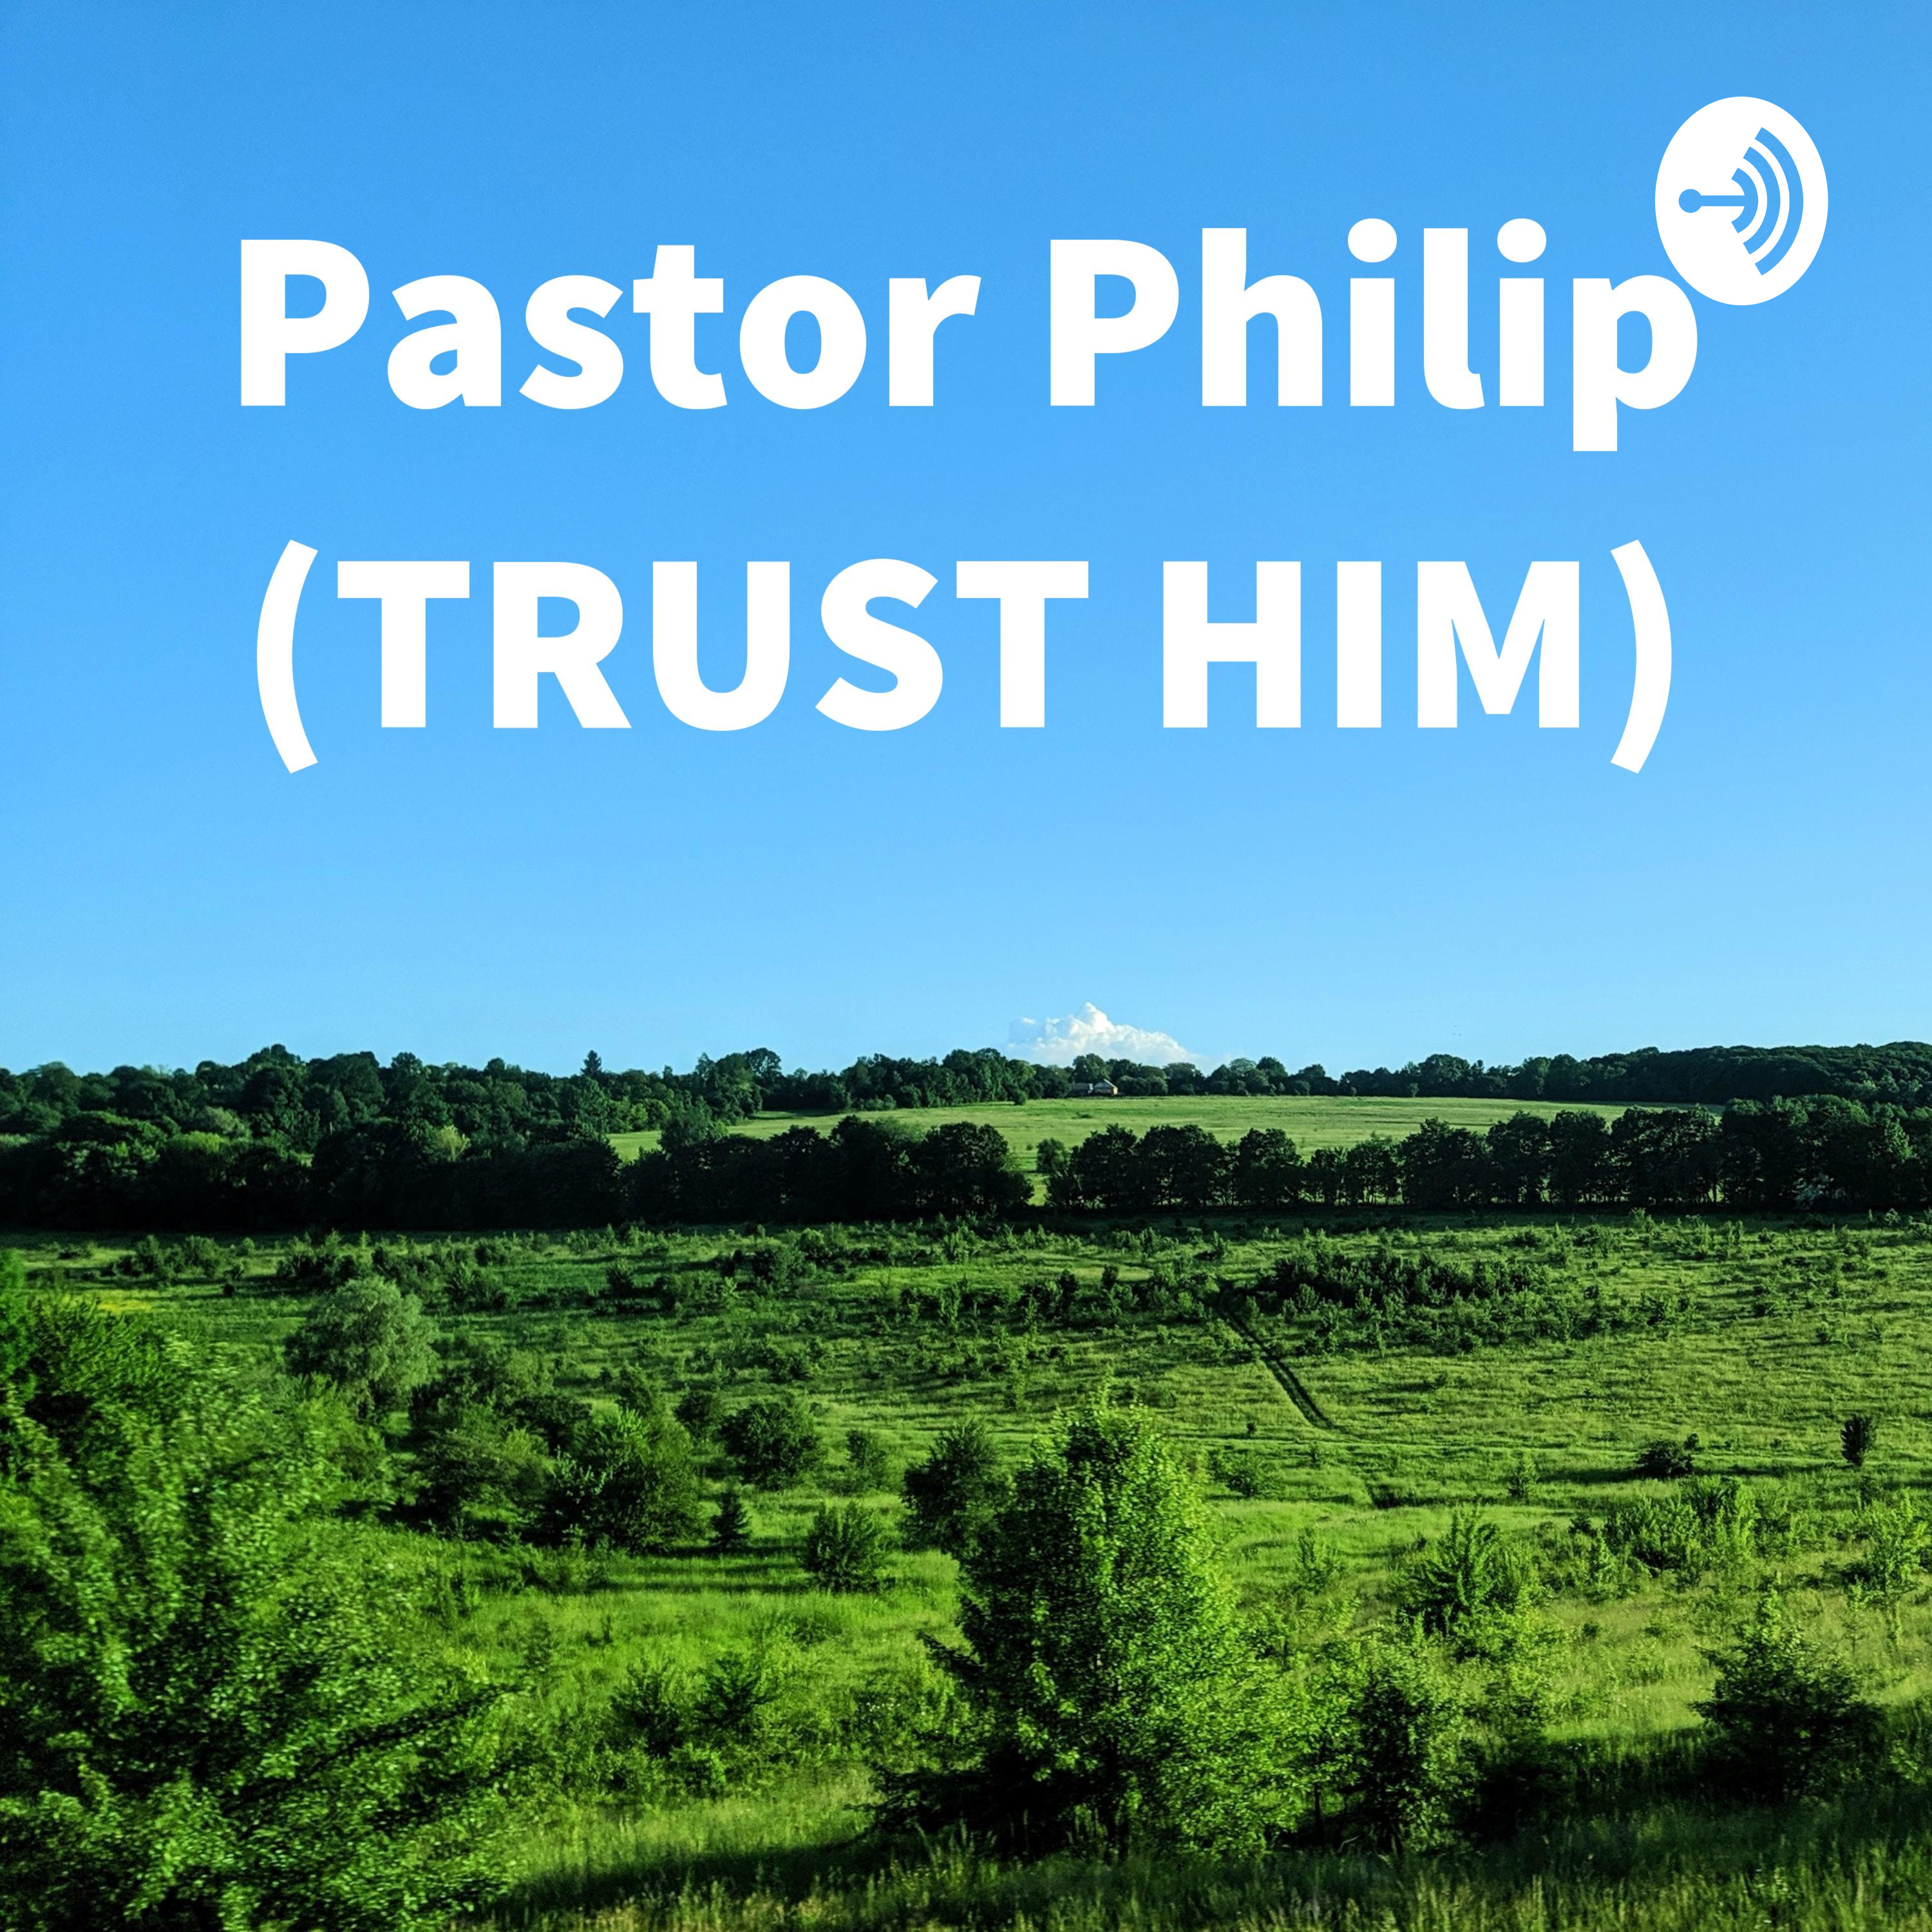 Pastor Philip (TRUST HIM)